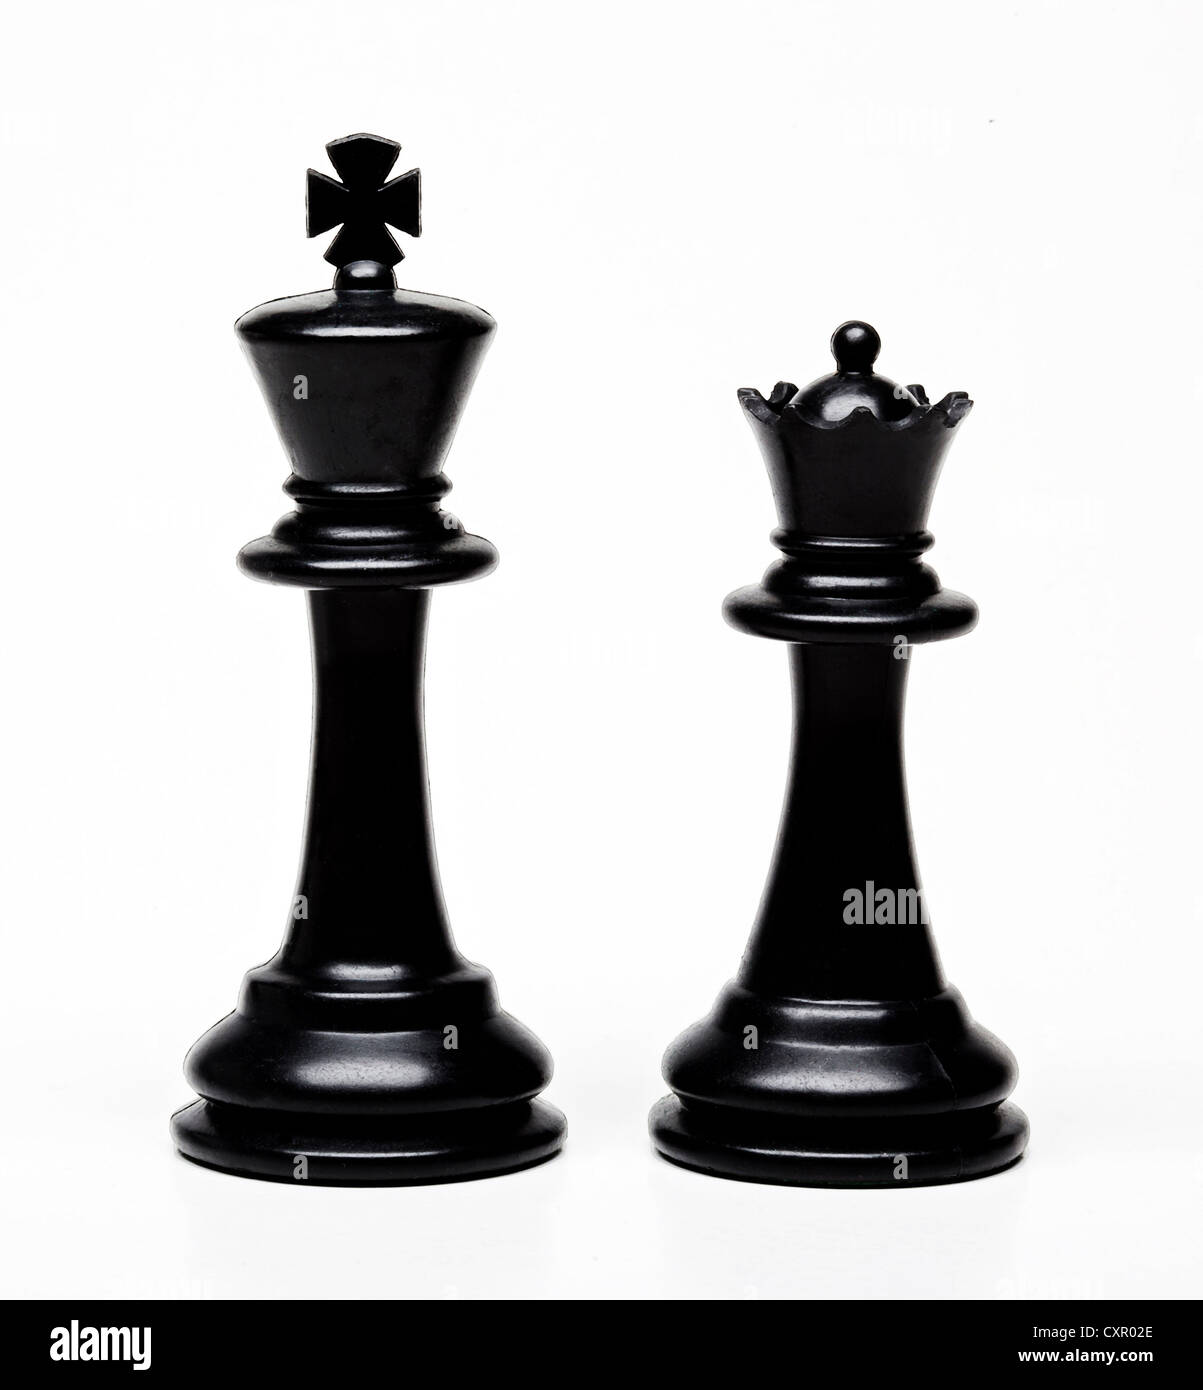 Chess king and queen pieces - Stock Image